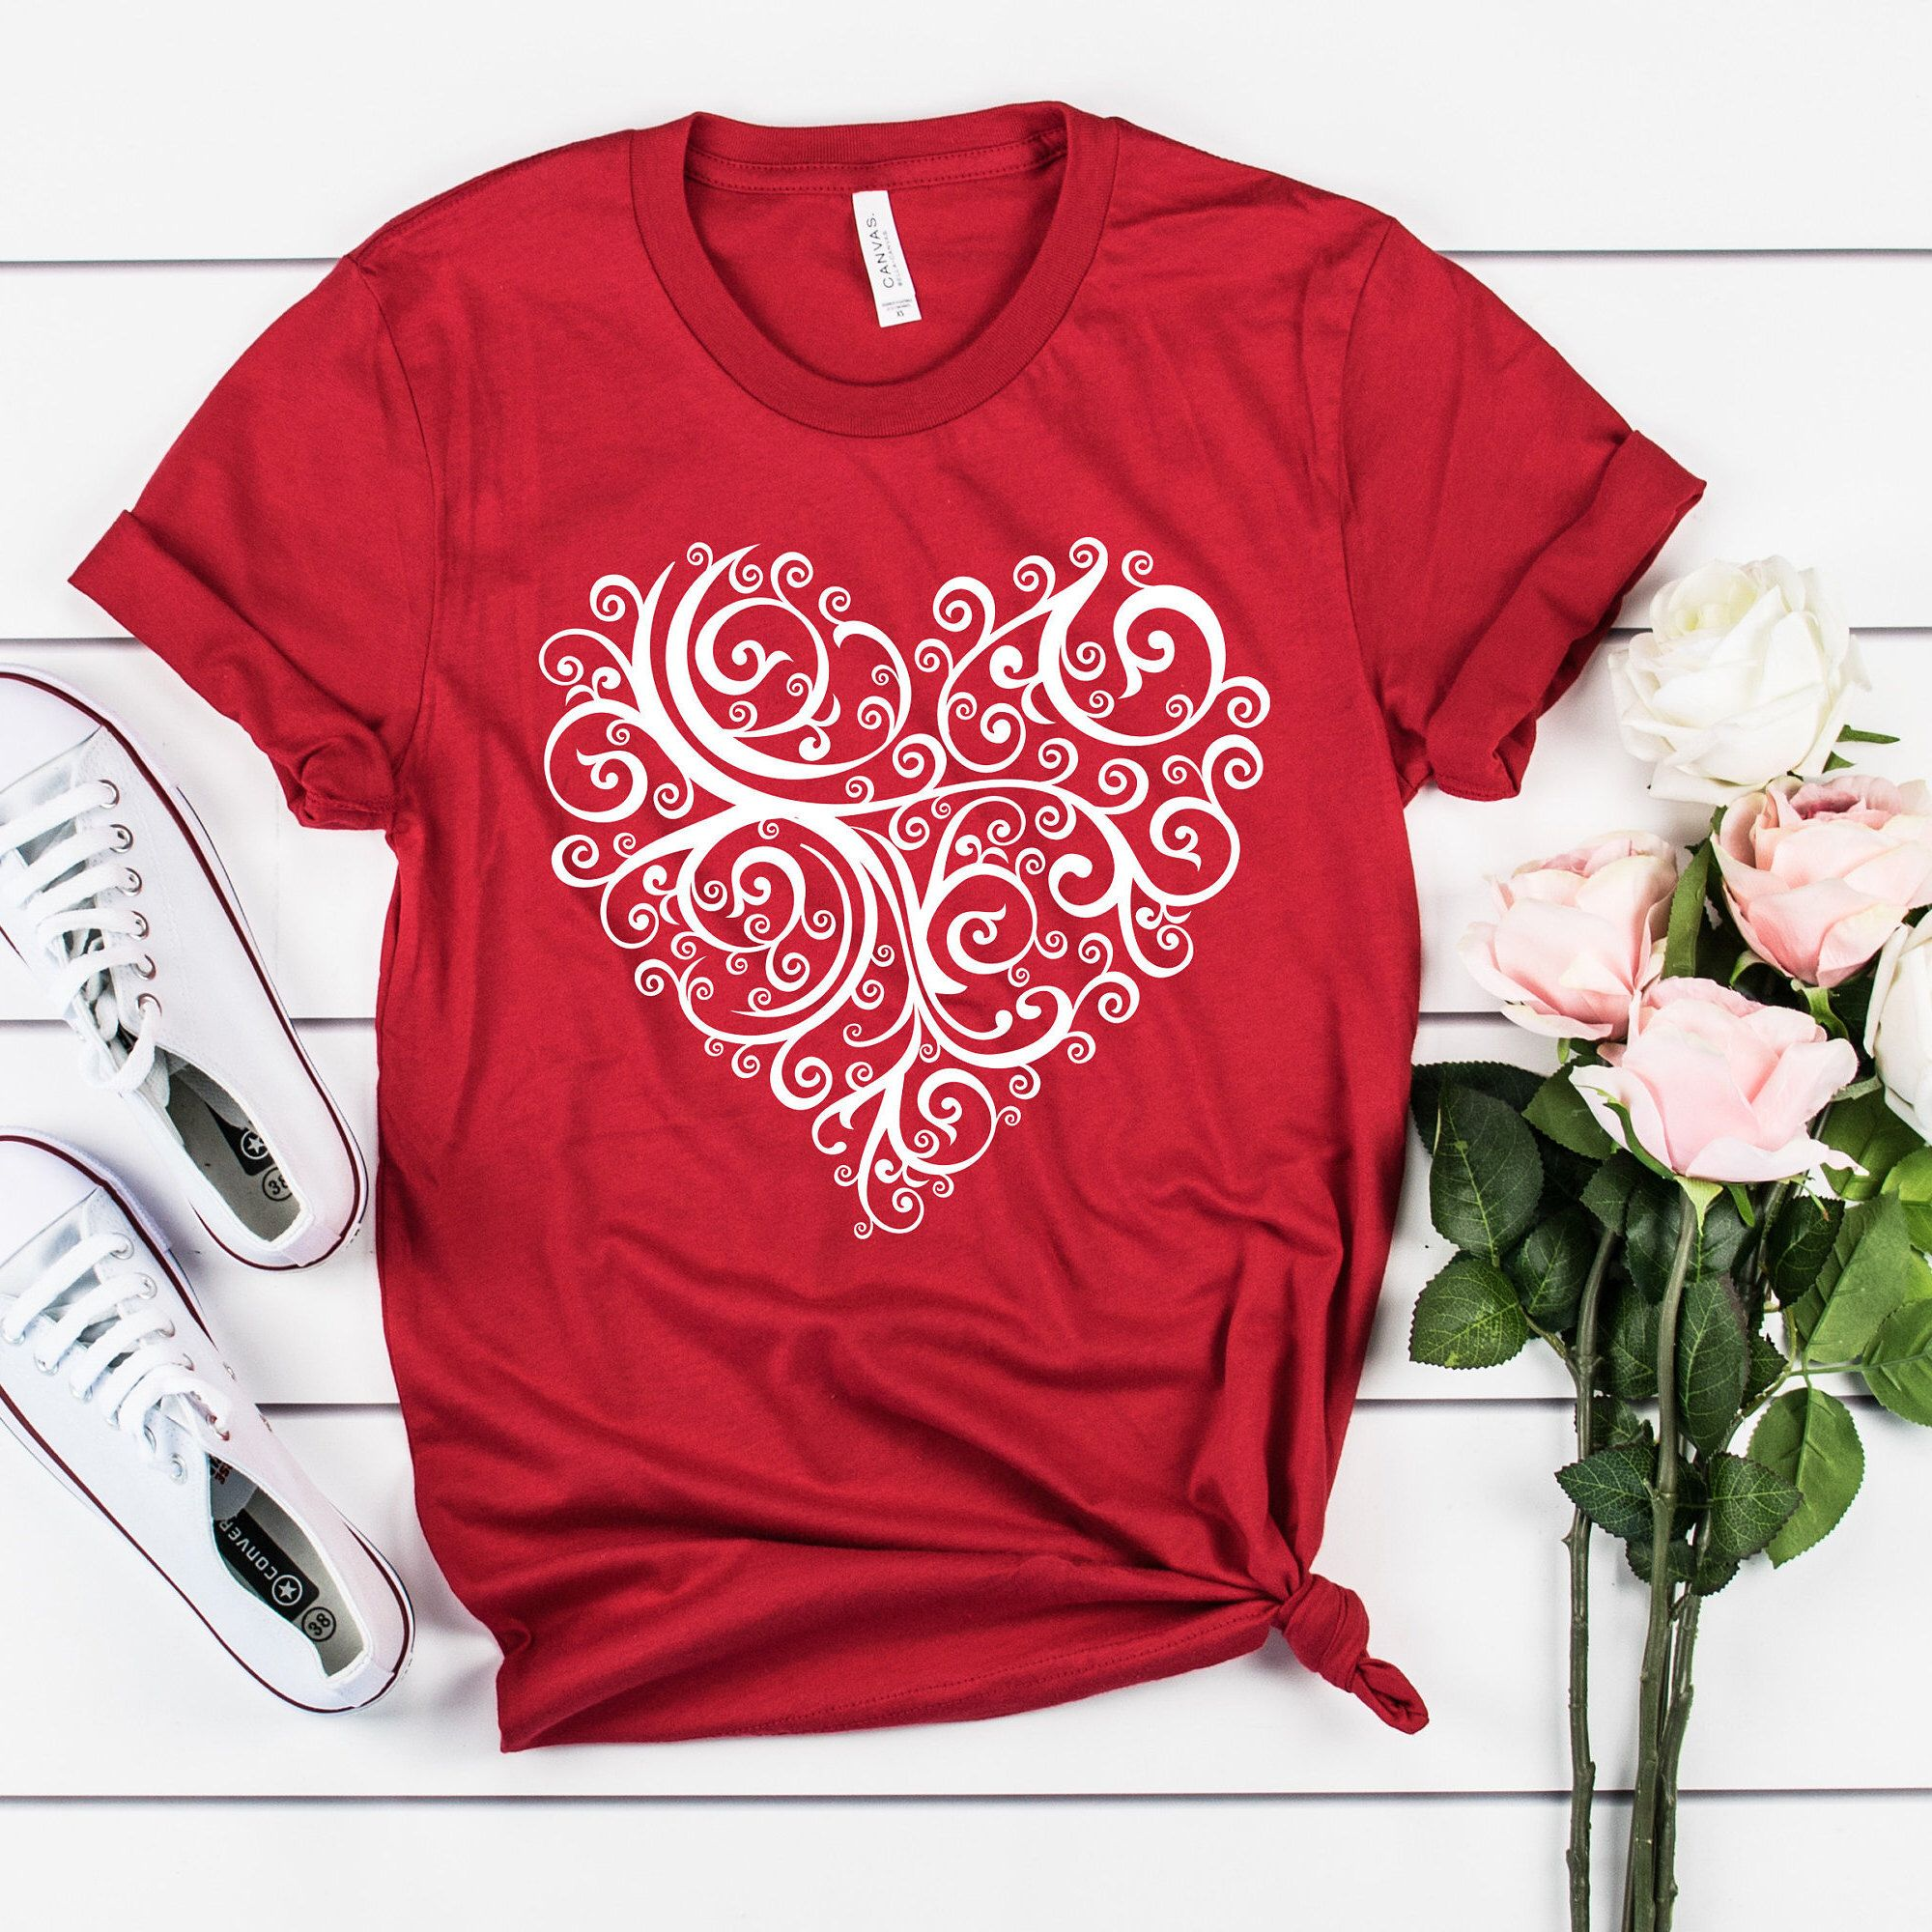 Pin by Amanda on Shirts in 2020 | Valentines shirt ...